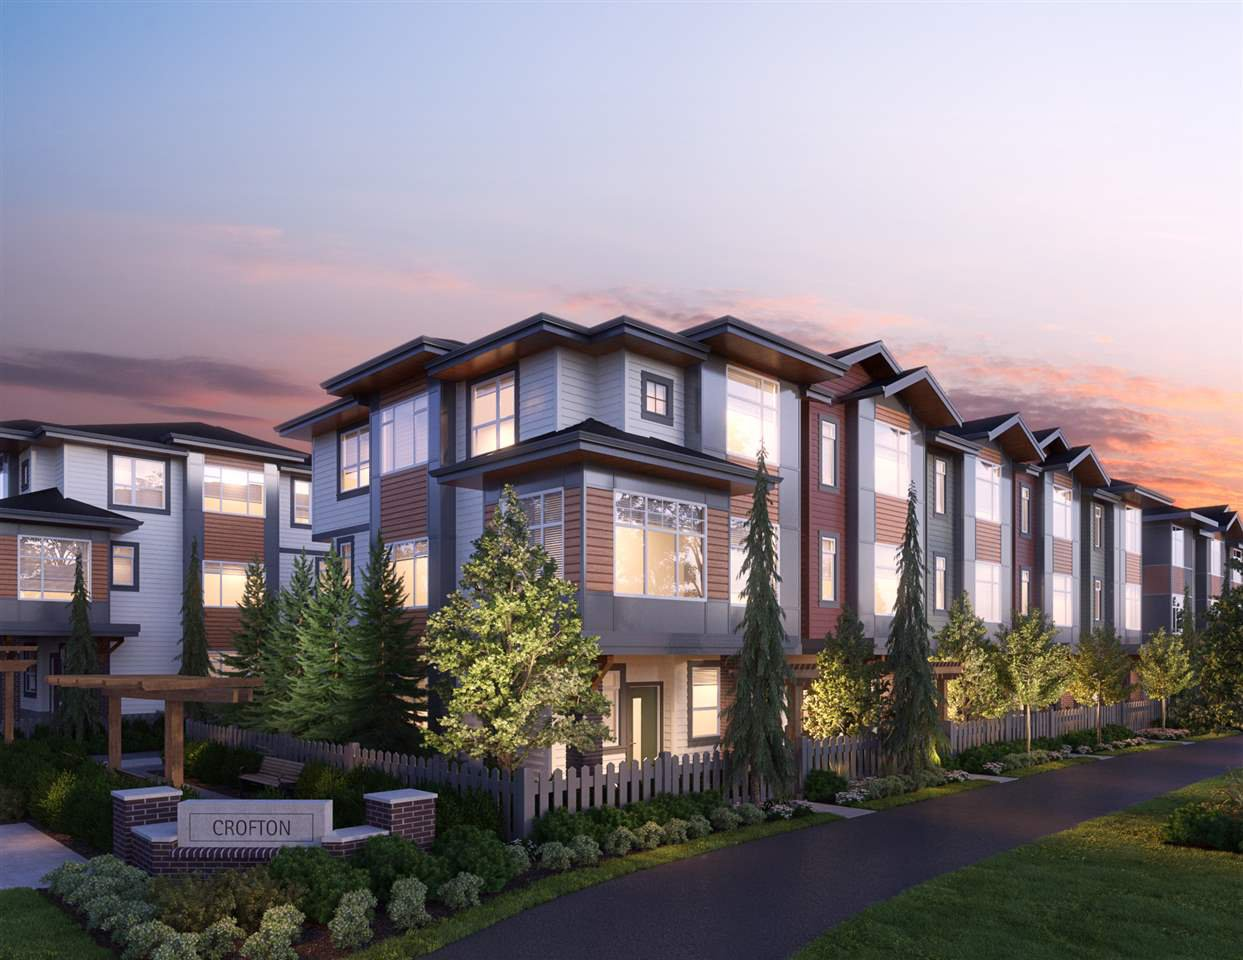 """Main Photo: 14 20763 76 AVENUE Avenue in Langley: Willoughby Heights Townhouse for sale in """"CROFTON"""" : MLS®# R2521213"""